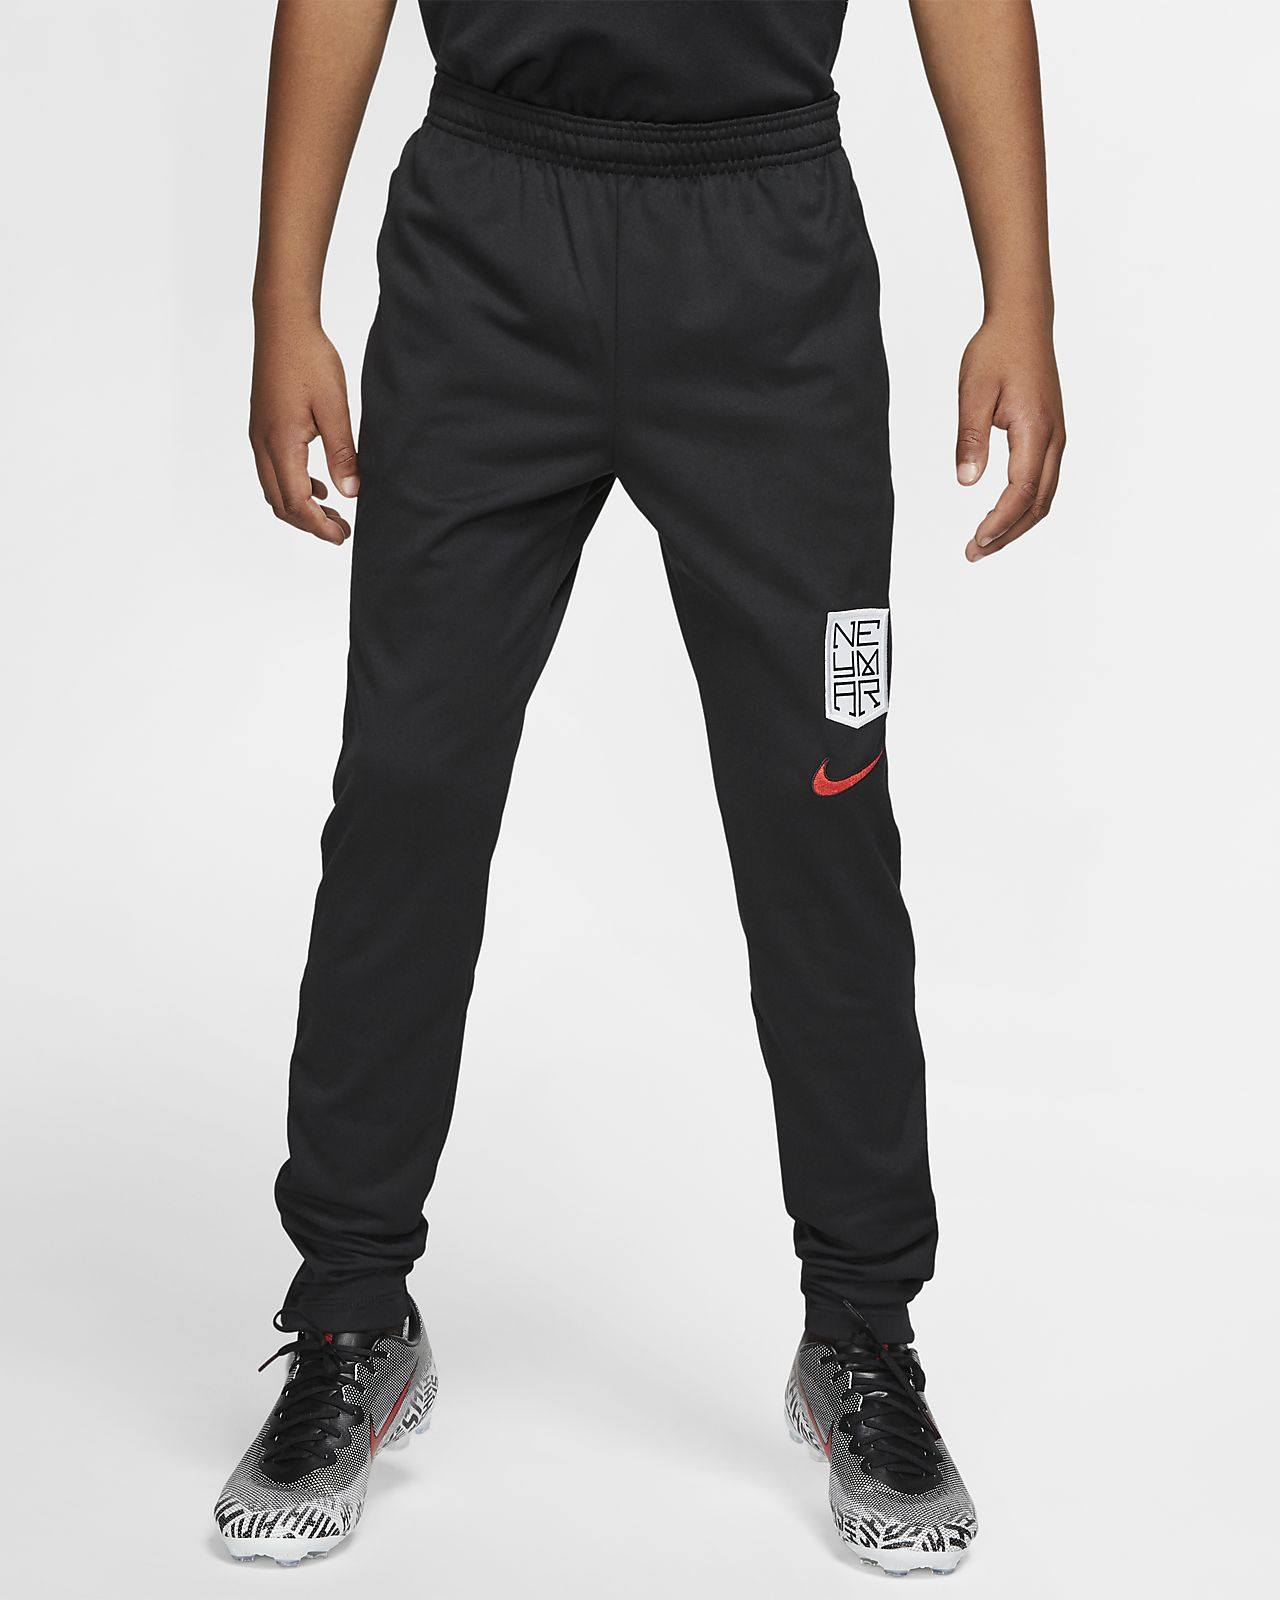 Nike Dri-FIT Neymar Jr. Older Kids' Football Pants